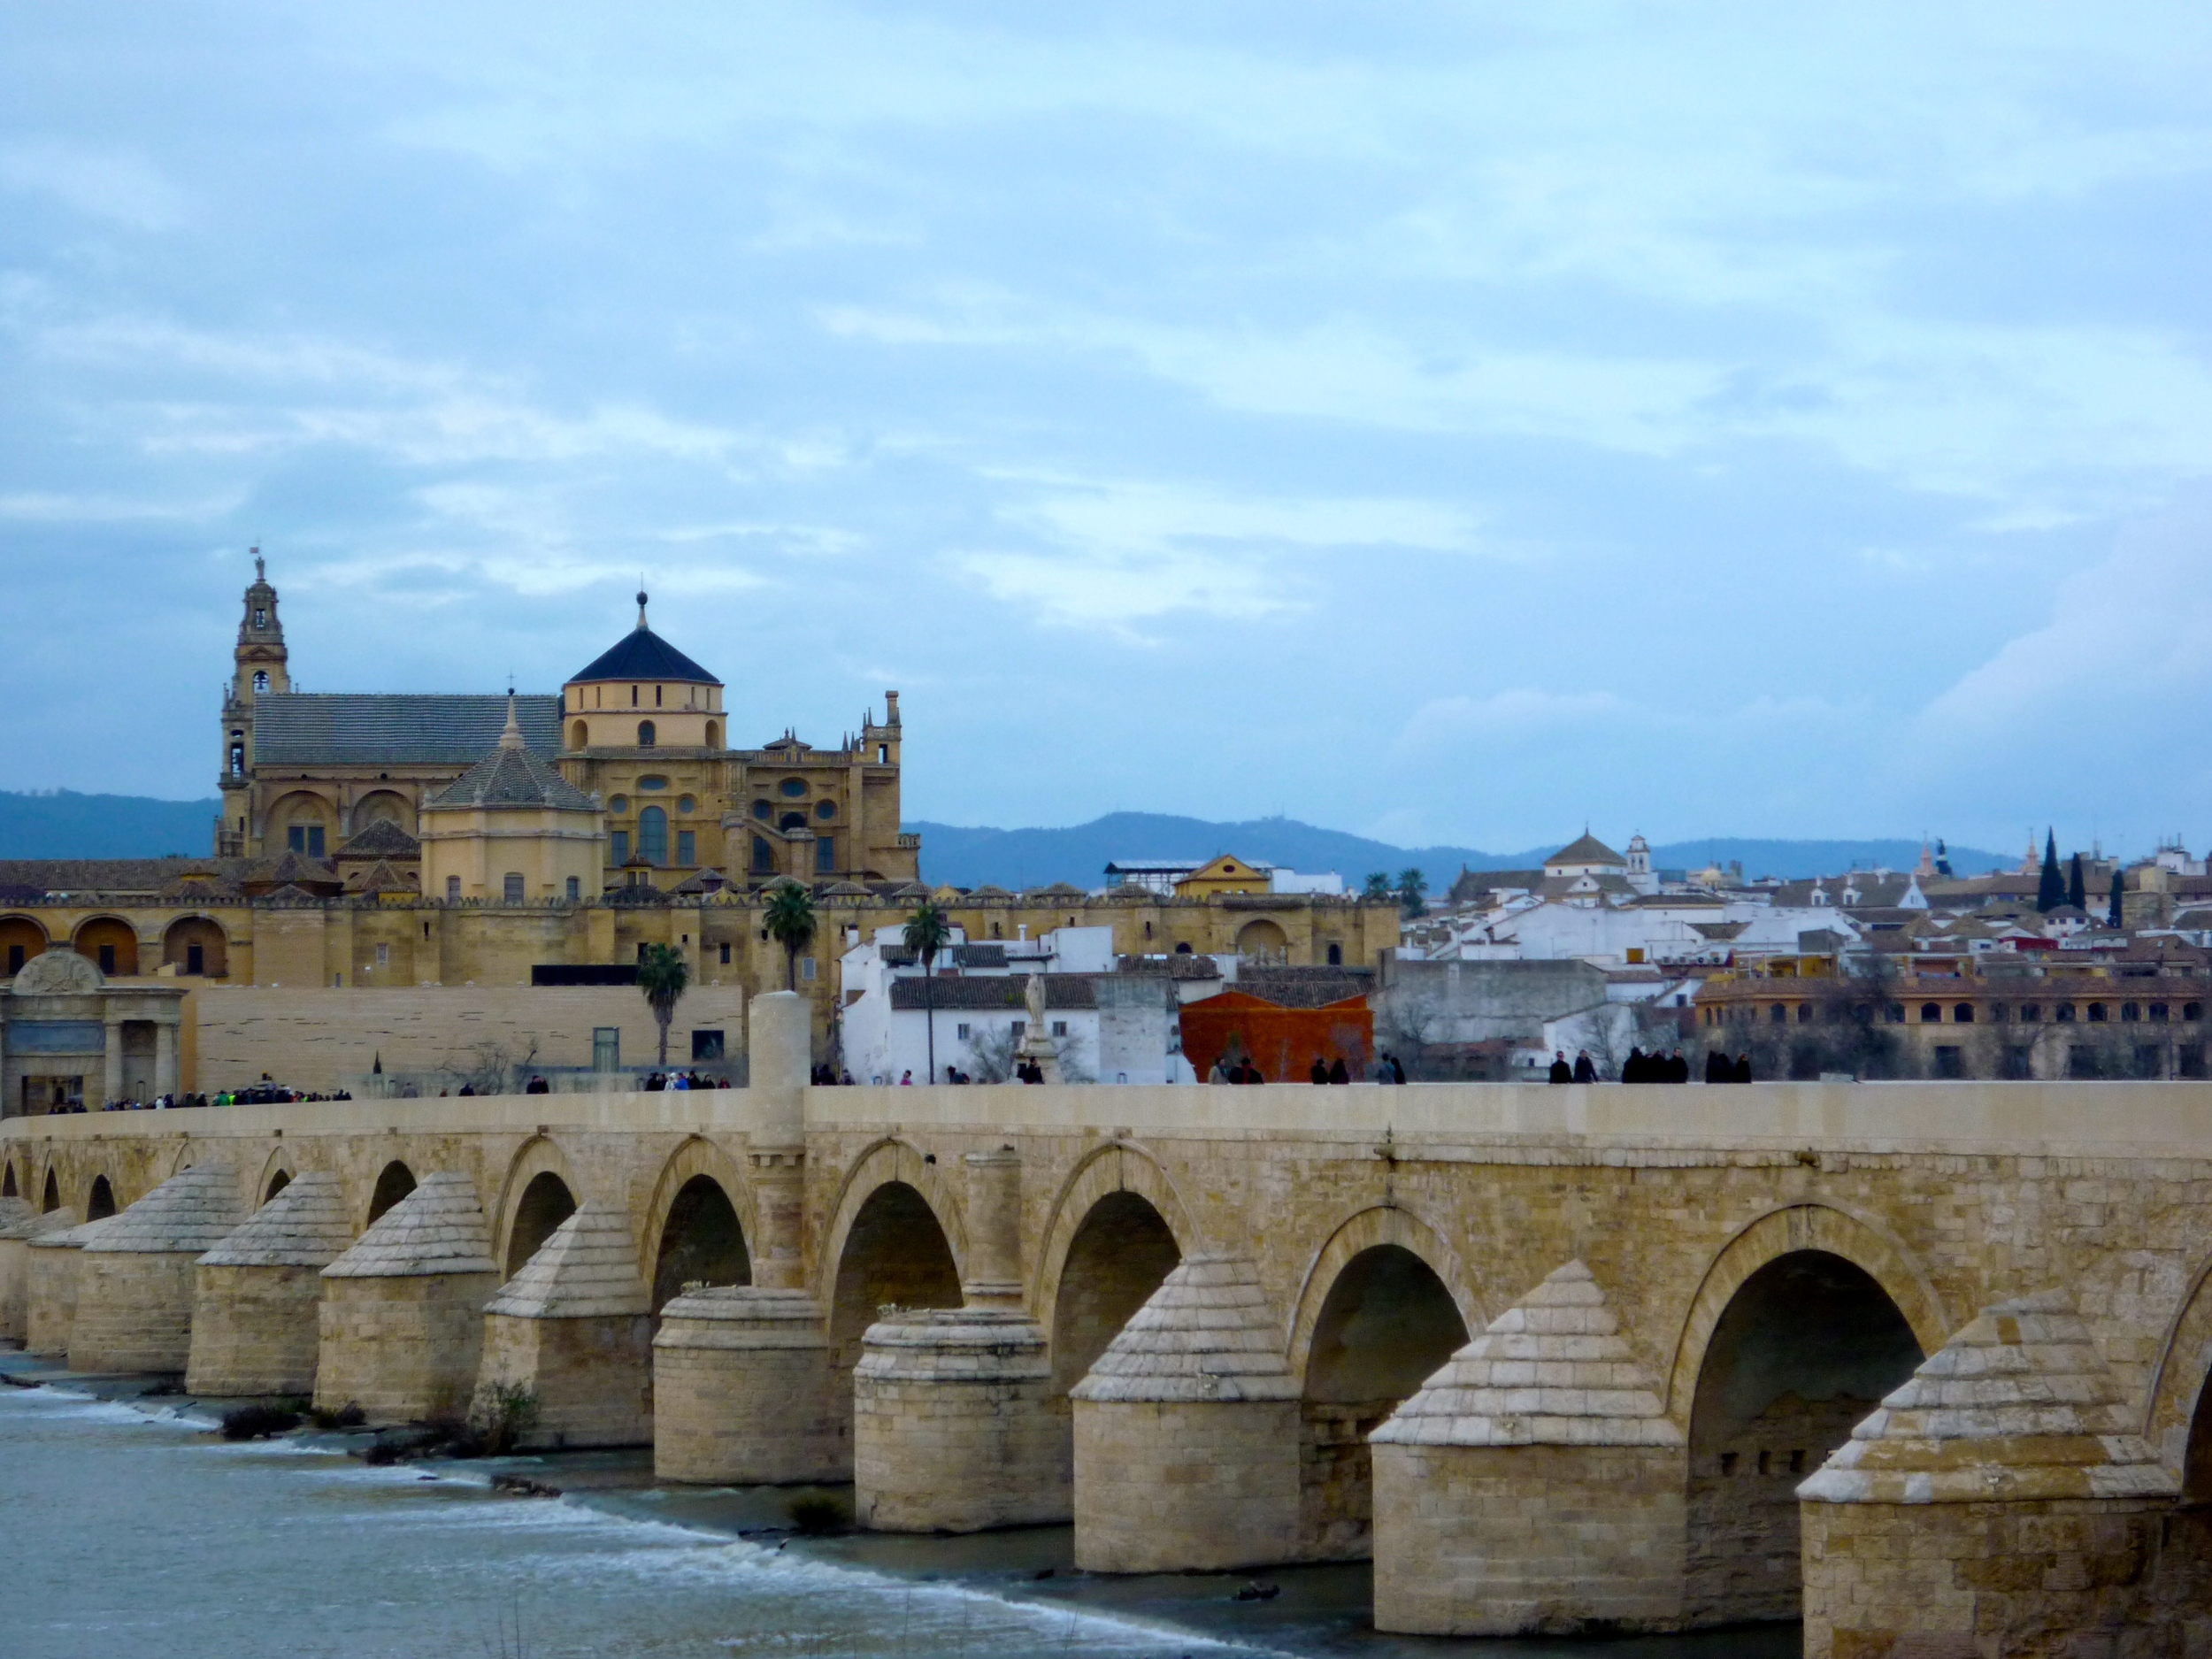 The Roman bridge and Mezquita beyond